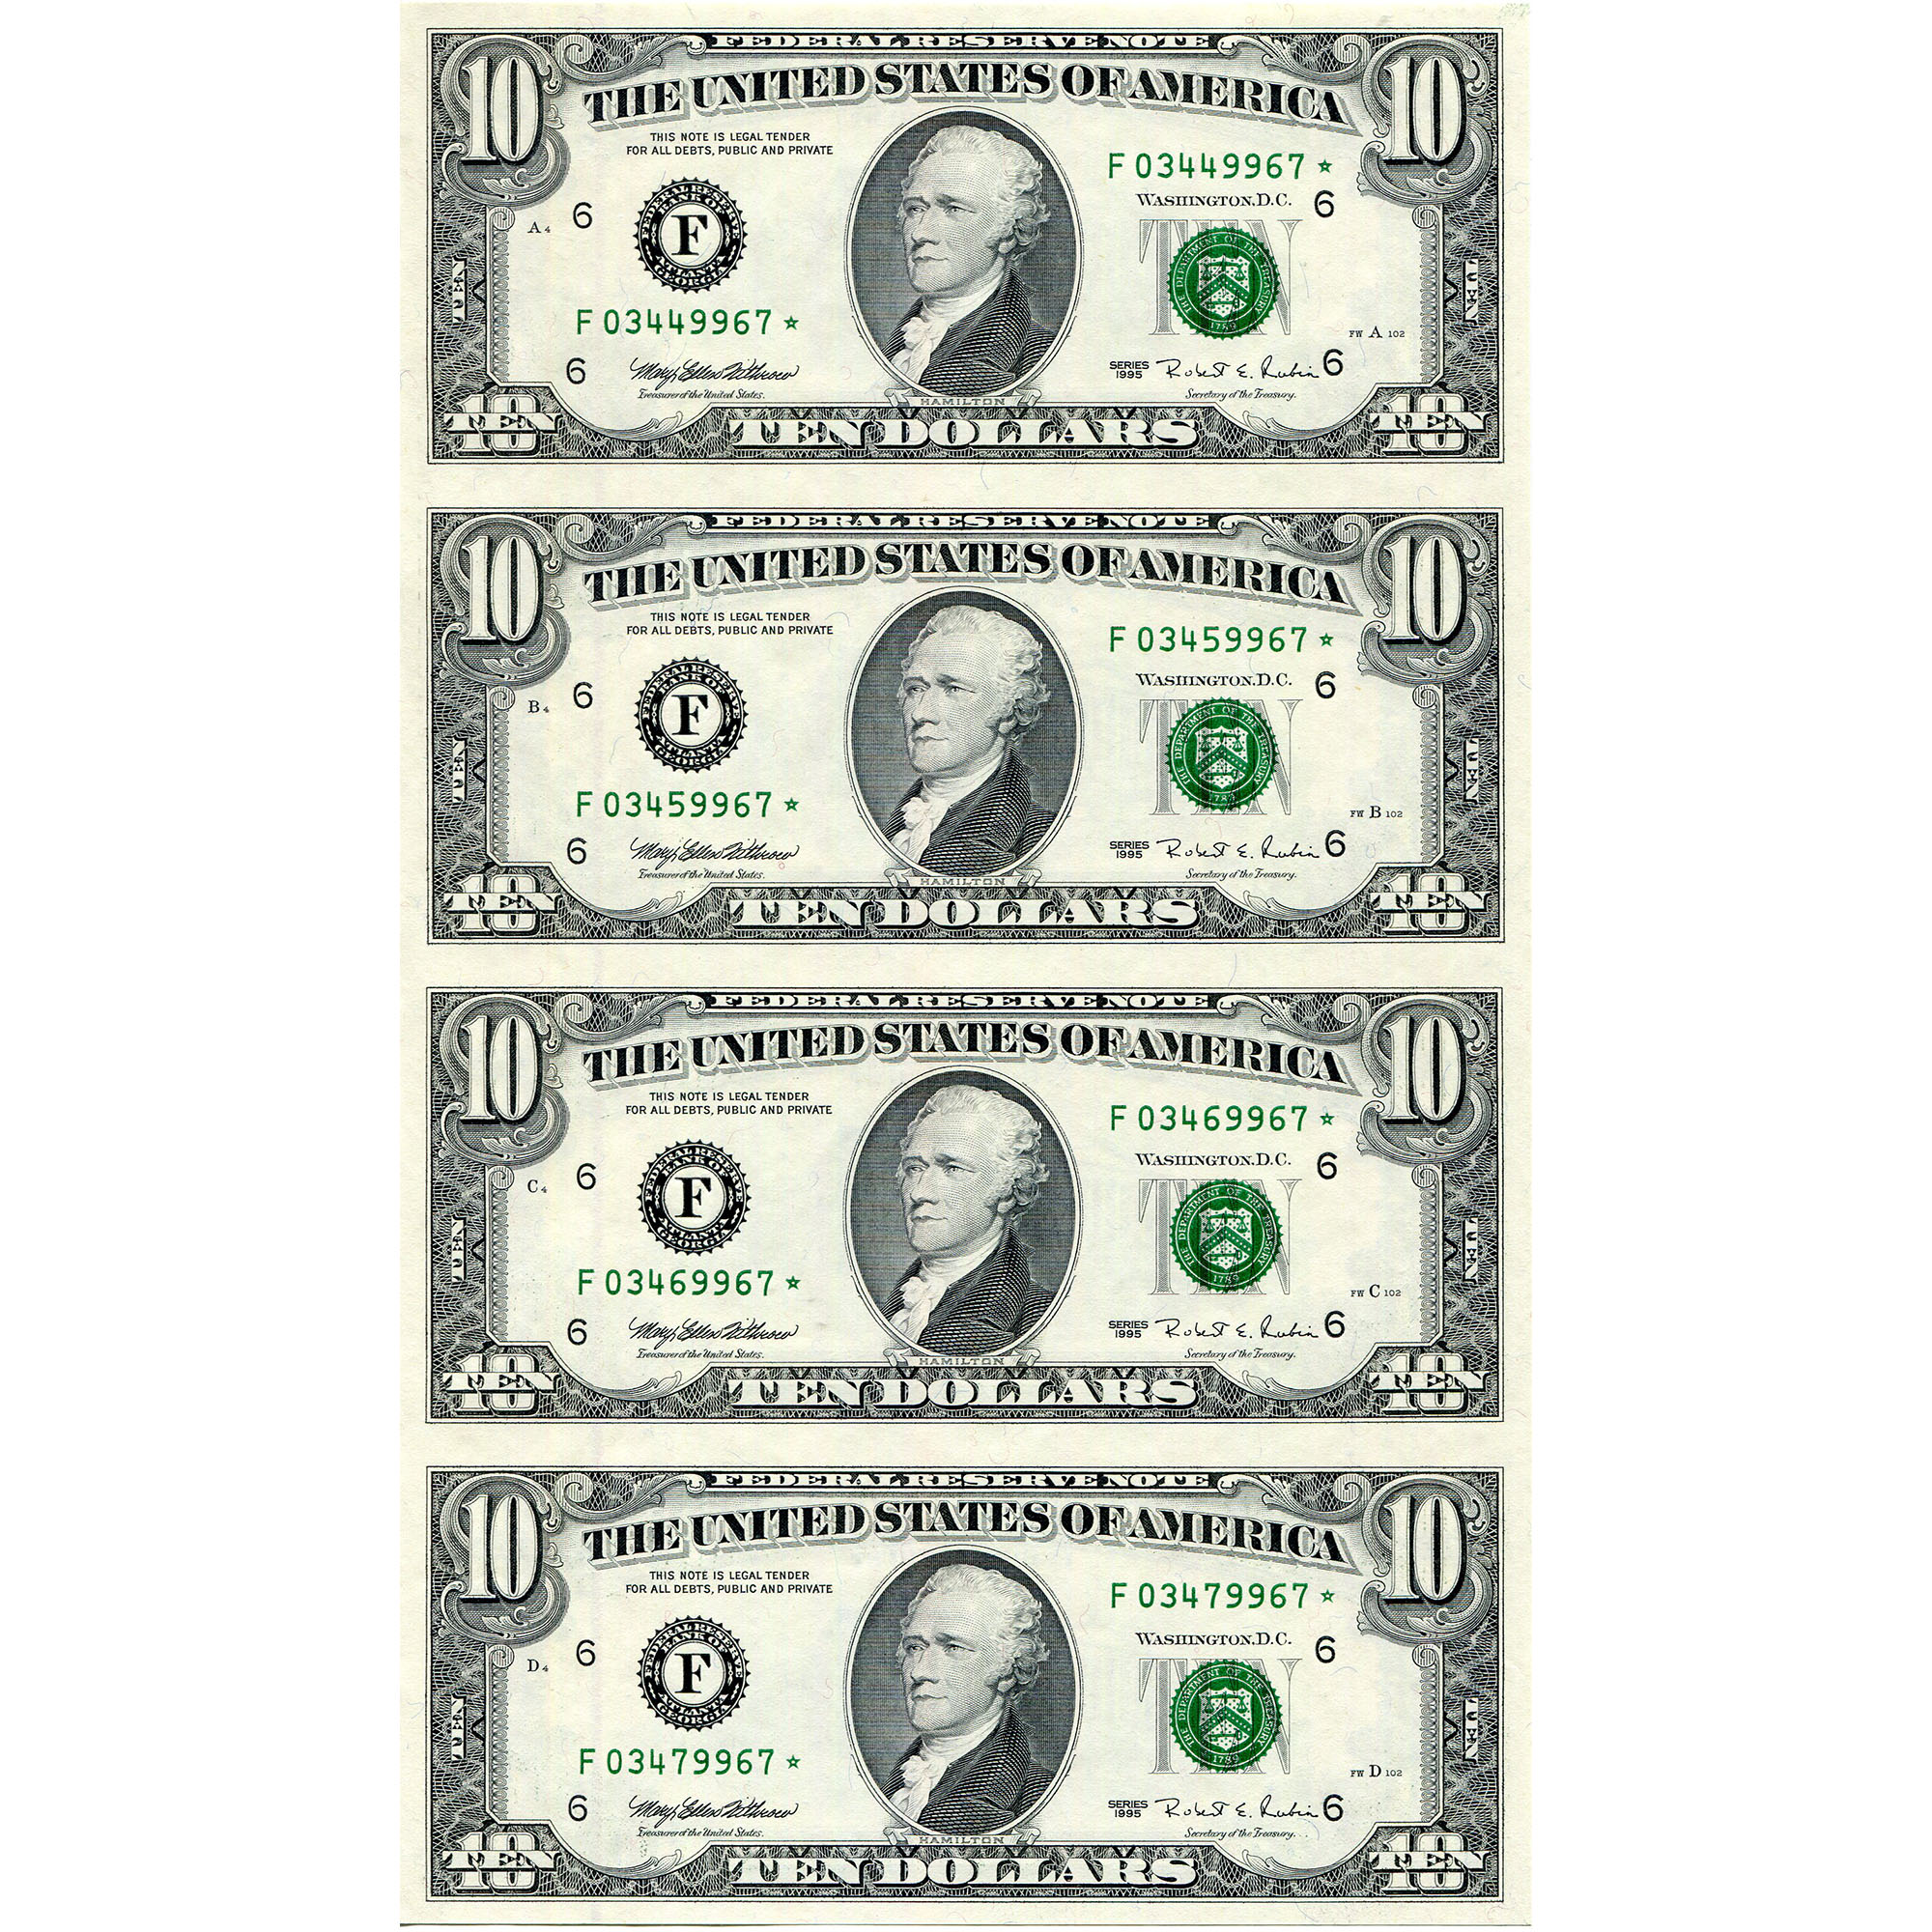 10 Uncut Currency Sheets